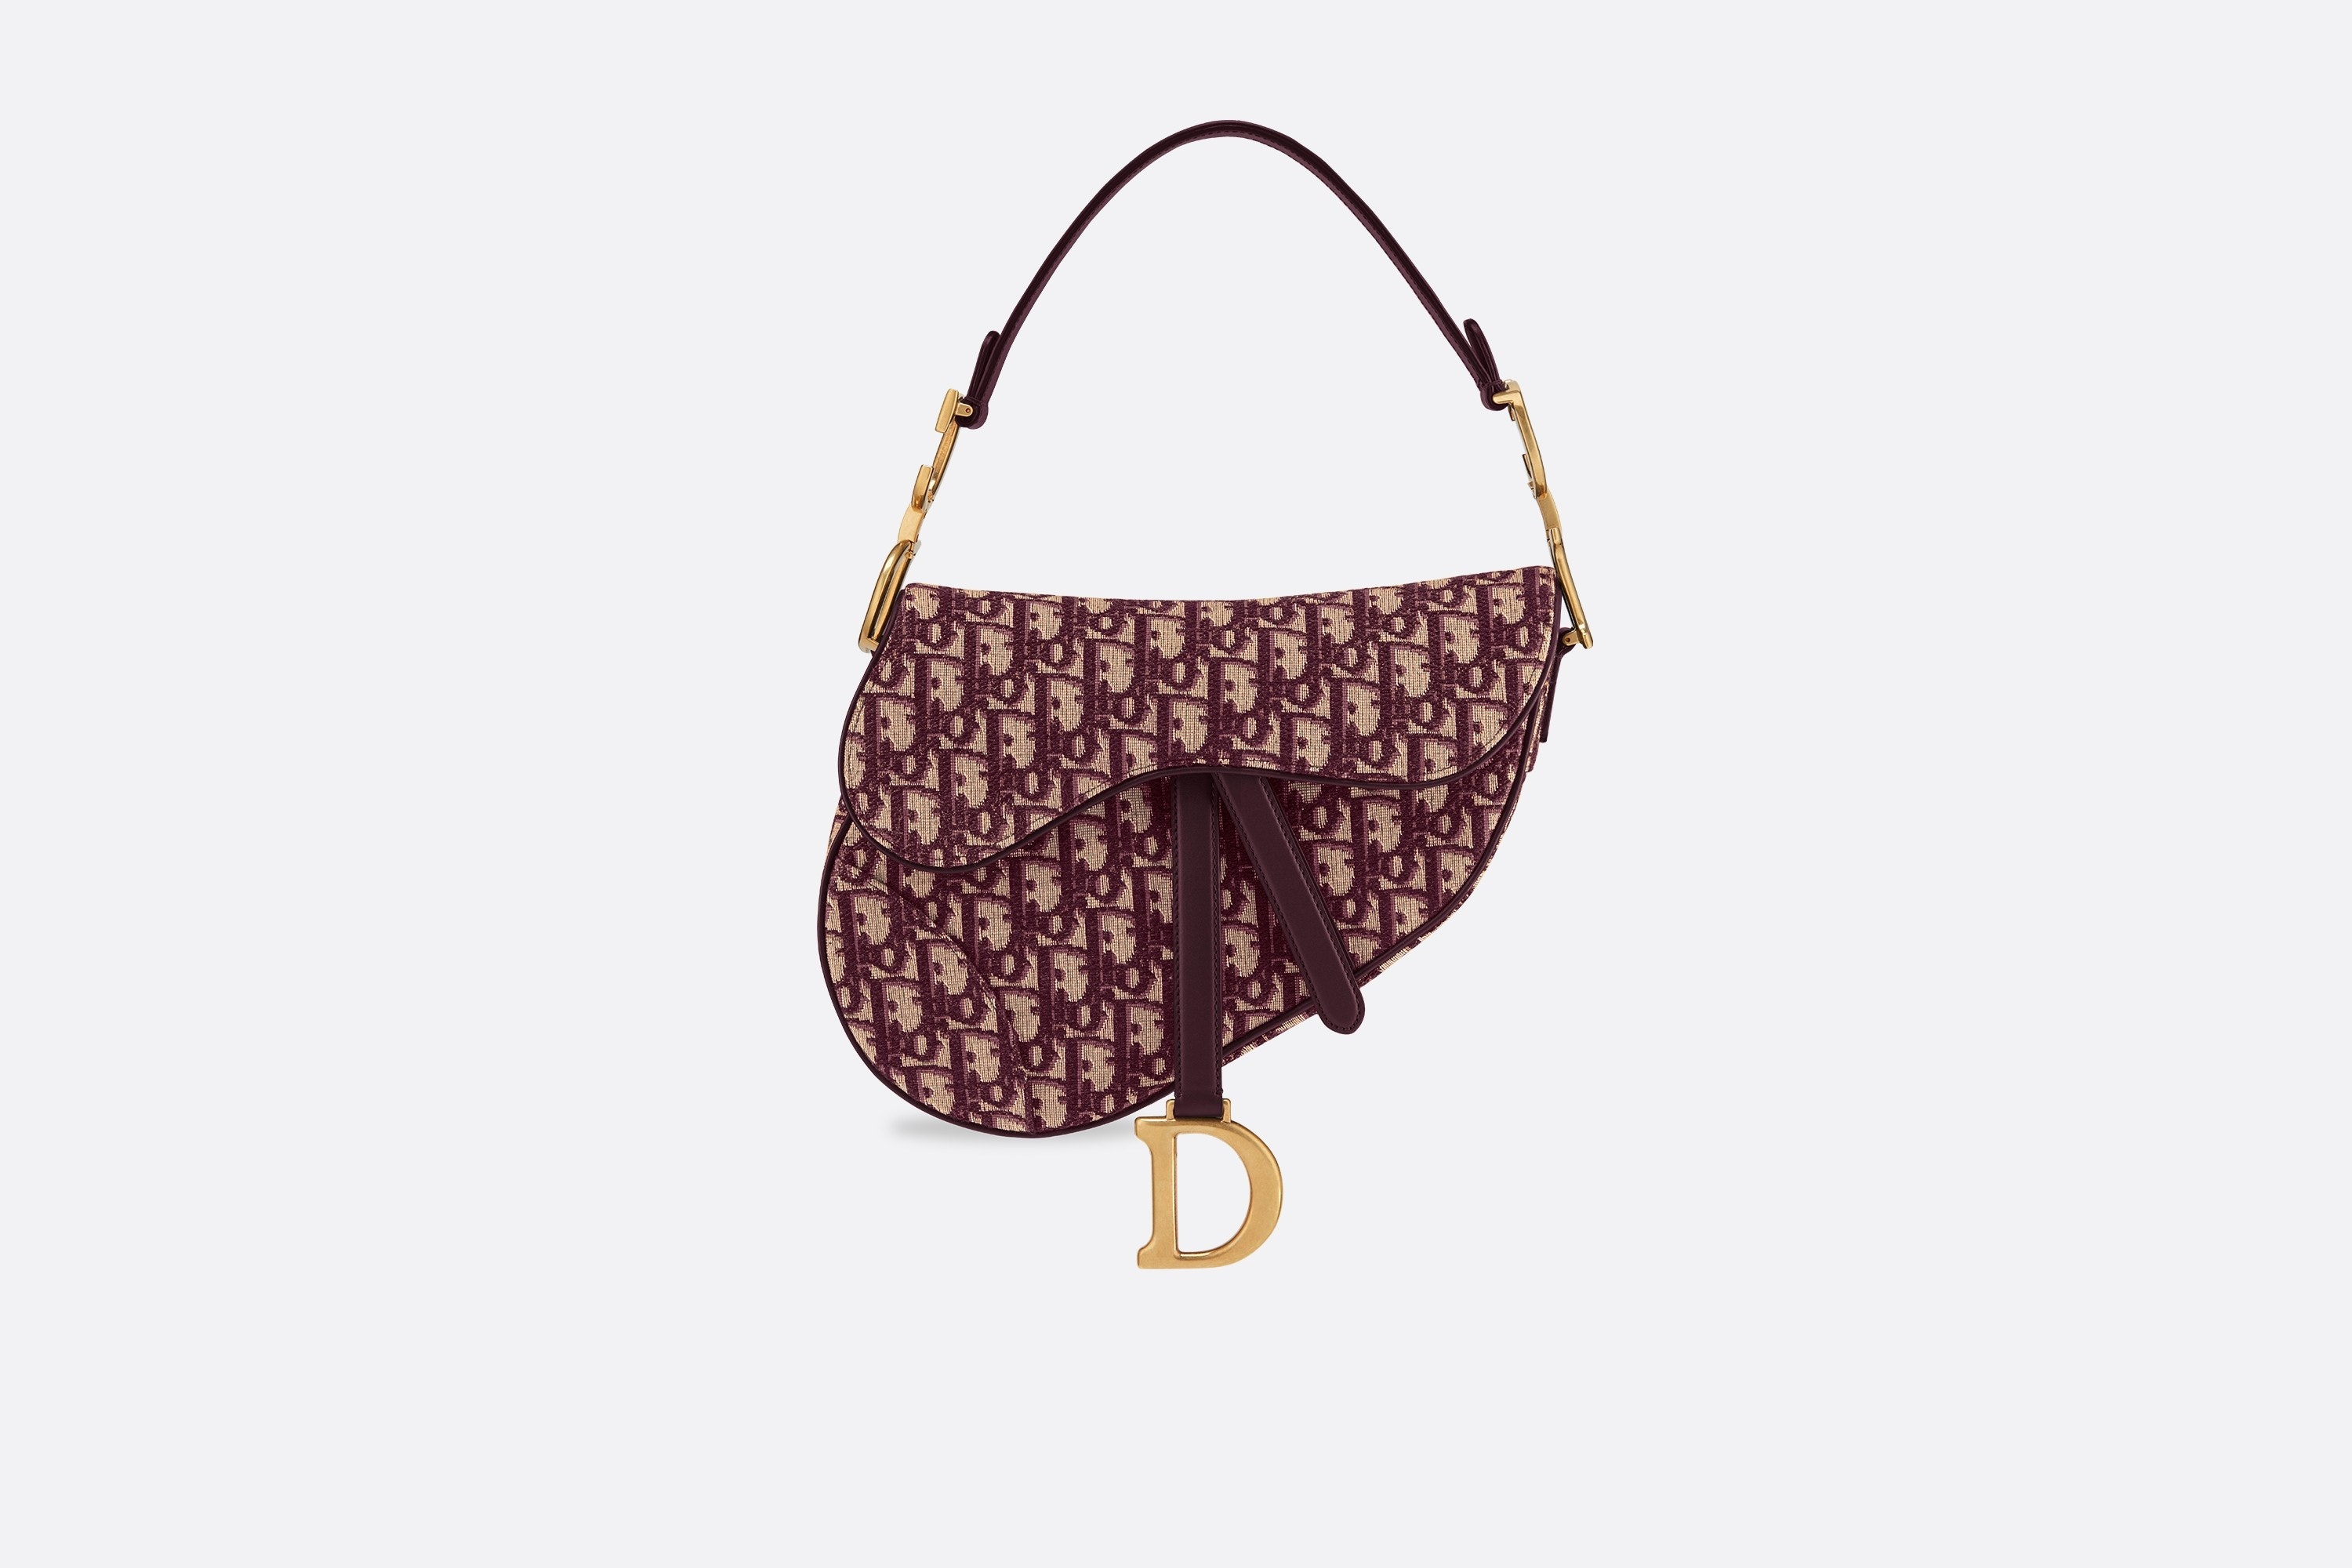 5975fb67d8 12 Trendy Handbags For 2019 To Consider Investing In This Year